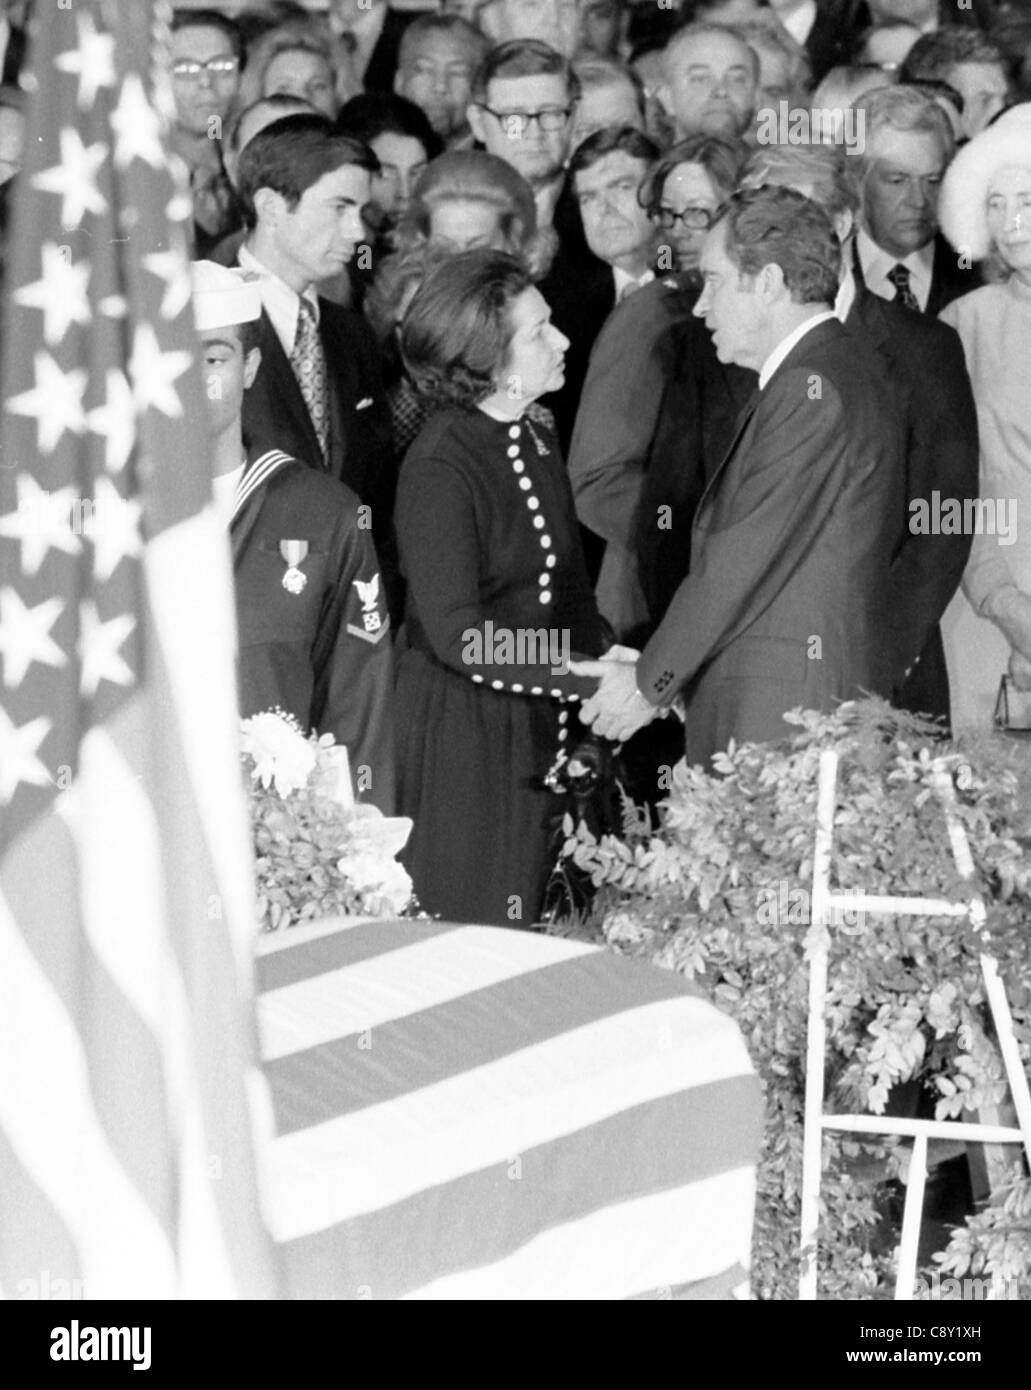 President Nixon offering condolences to Lady Bird Johnson with casket in the foreground. LBJ funeral ceremonies - Stock Image